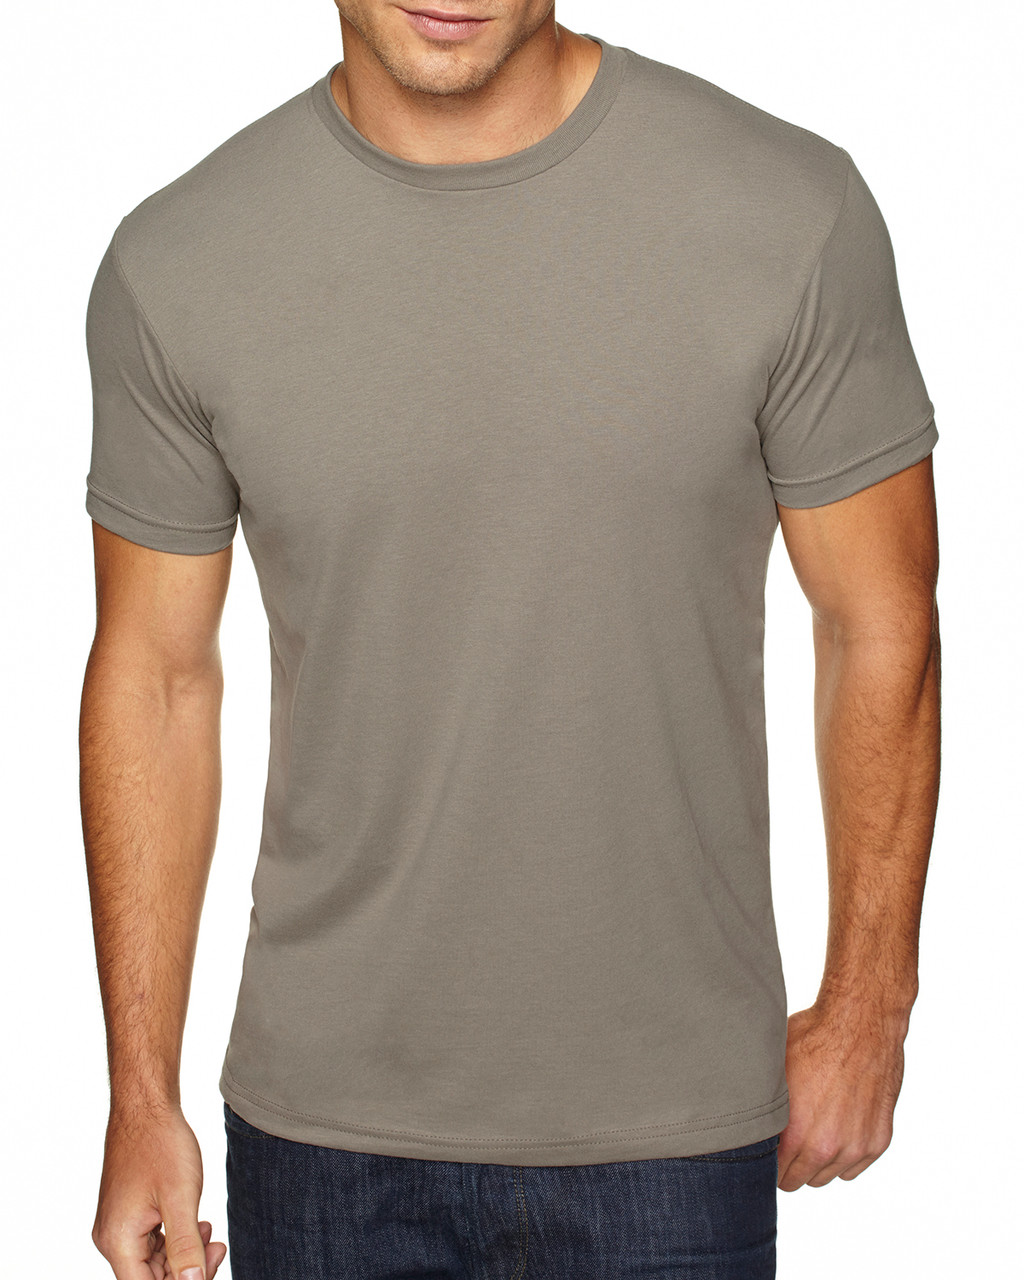 Warm Grey - 6410 Next Level Men's Premium Fitted Sueded T-Shirt | Blankclothing.ca